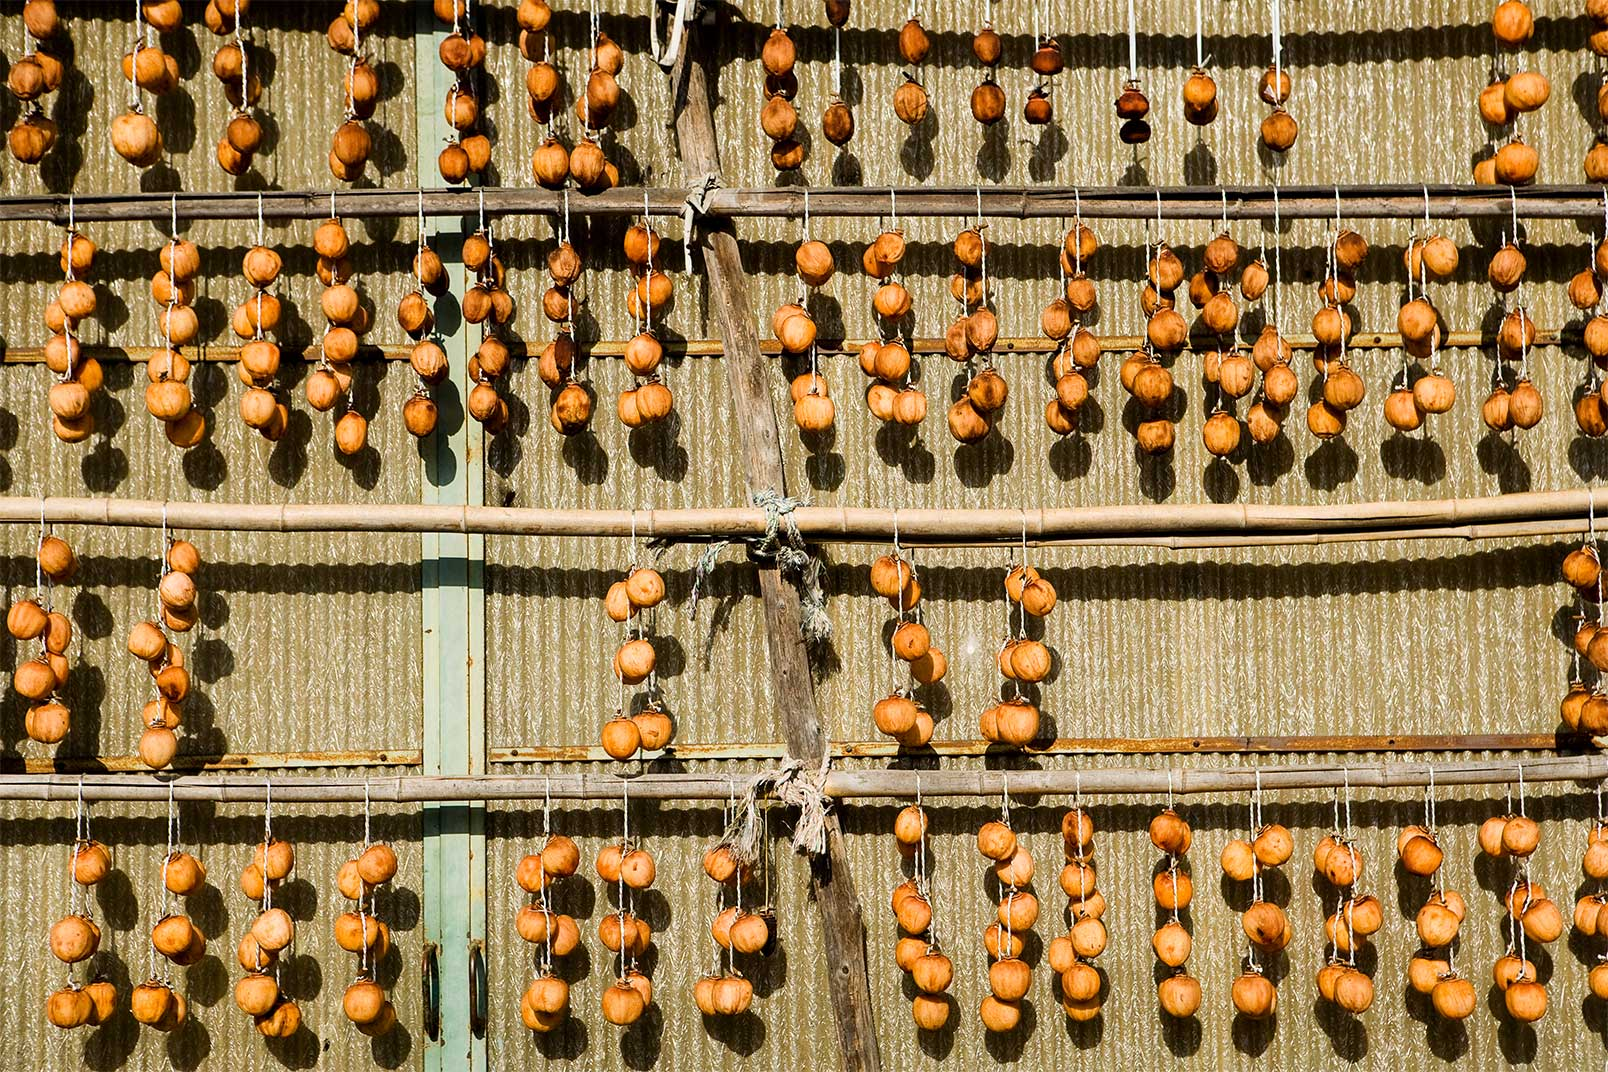 Persimmons drying outdoors in Gifu Japan